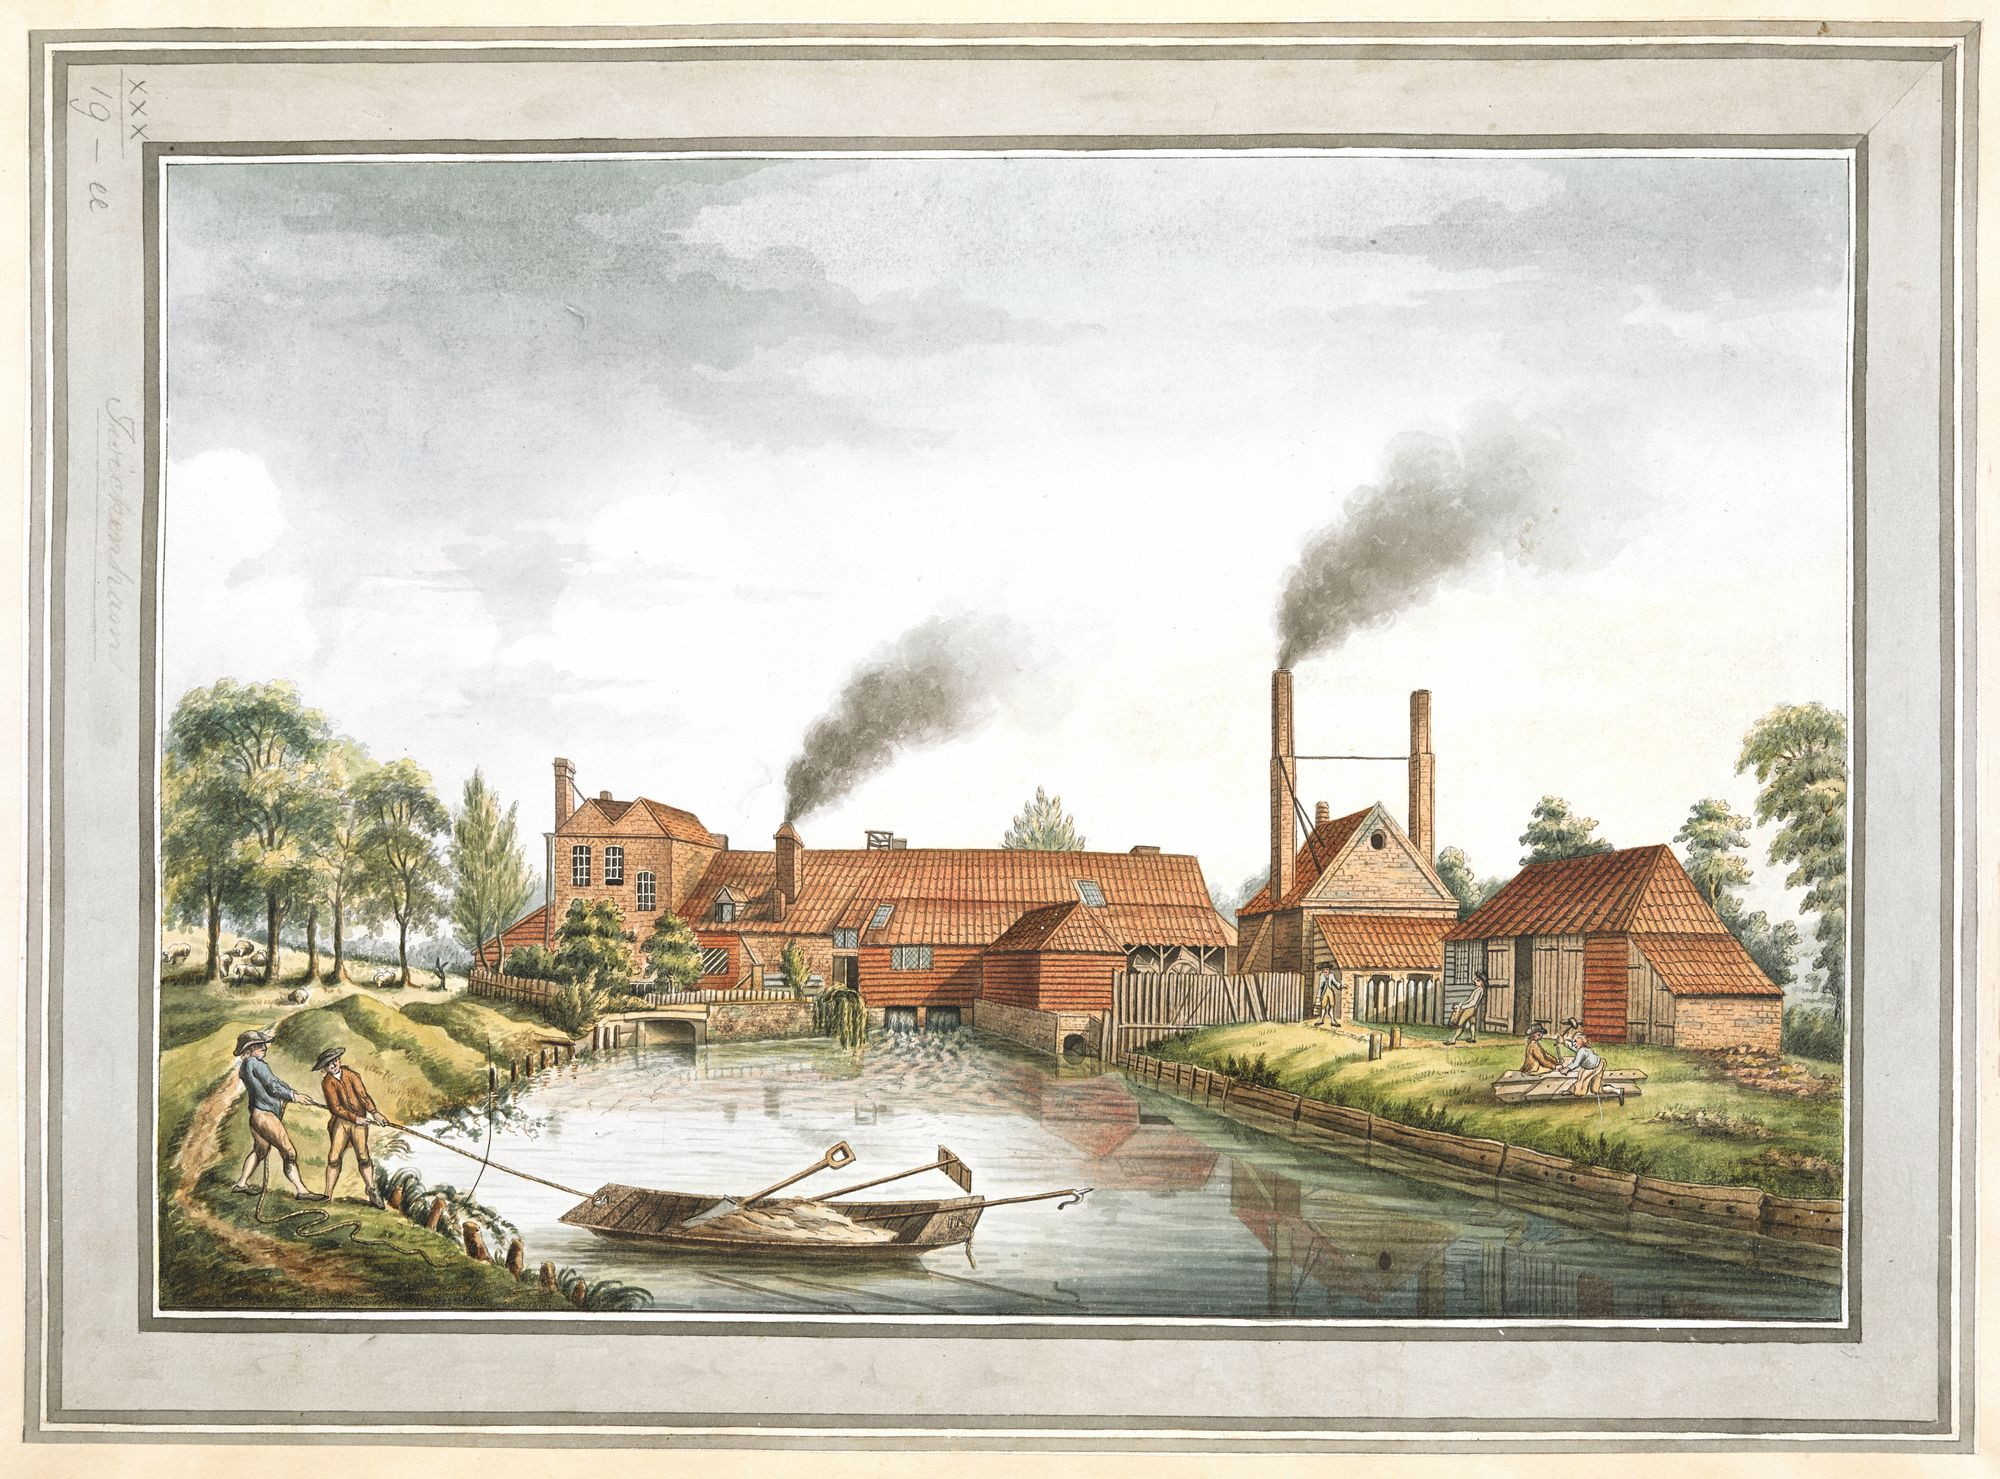 Anonyme, A drawn View of the Copper Mills on Twickenham Common, 1795, dessin, 31,5 x 43,5 cm, British Library, Londres